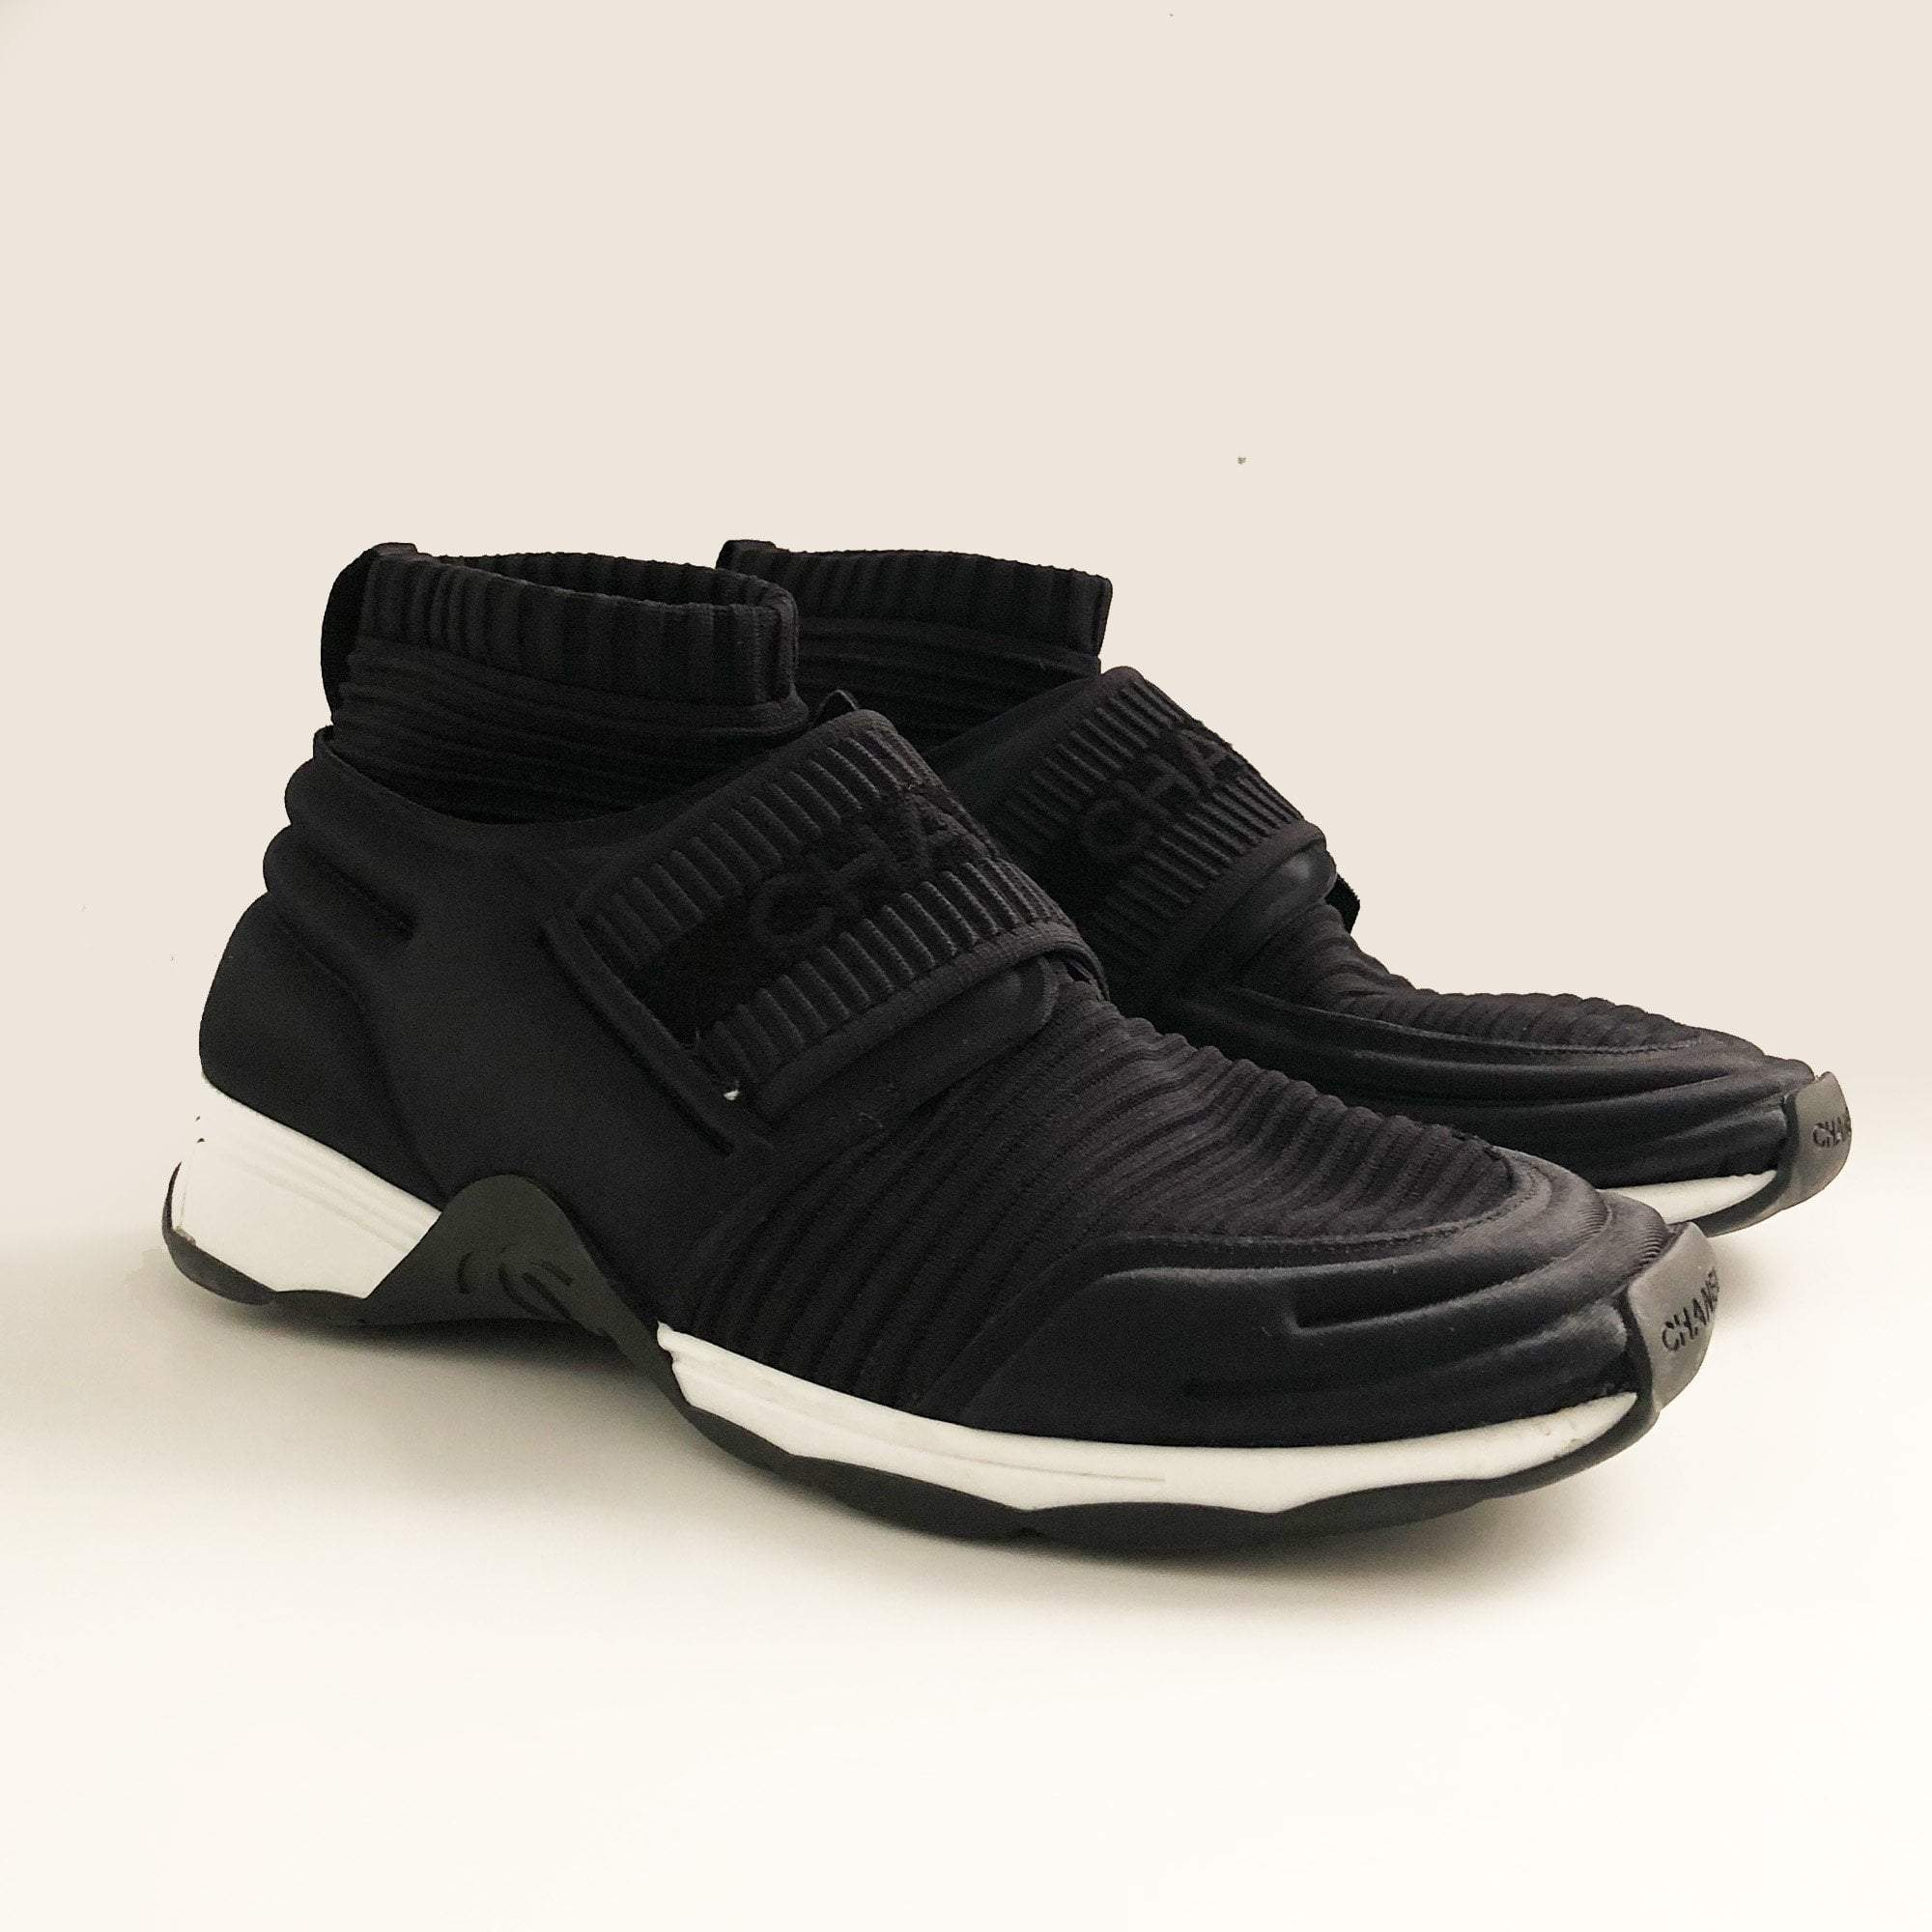 Chanel Black Speed High Top Stretch Knit Sneakers